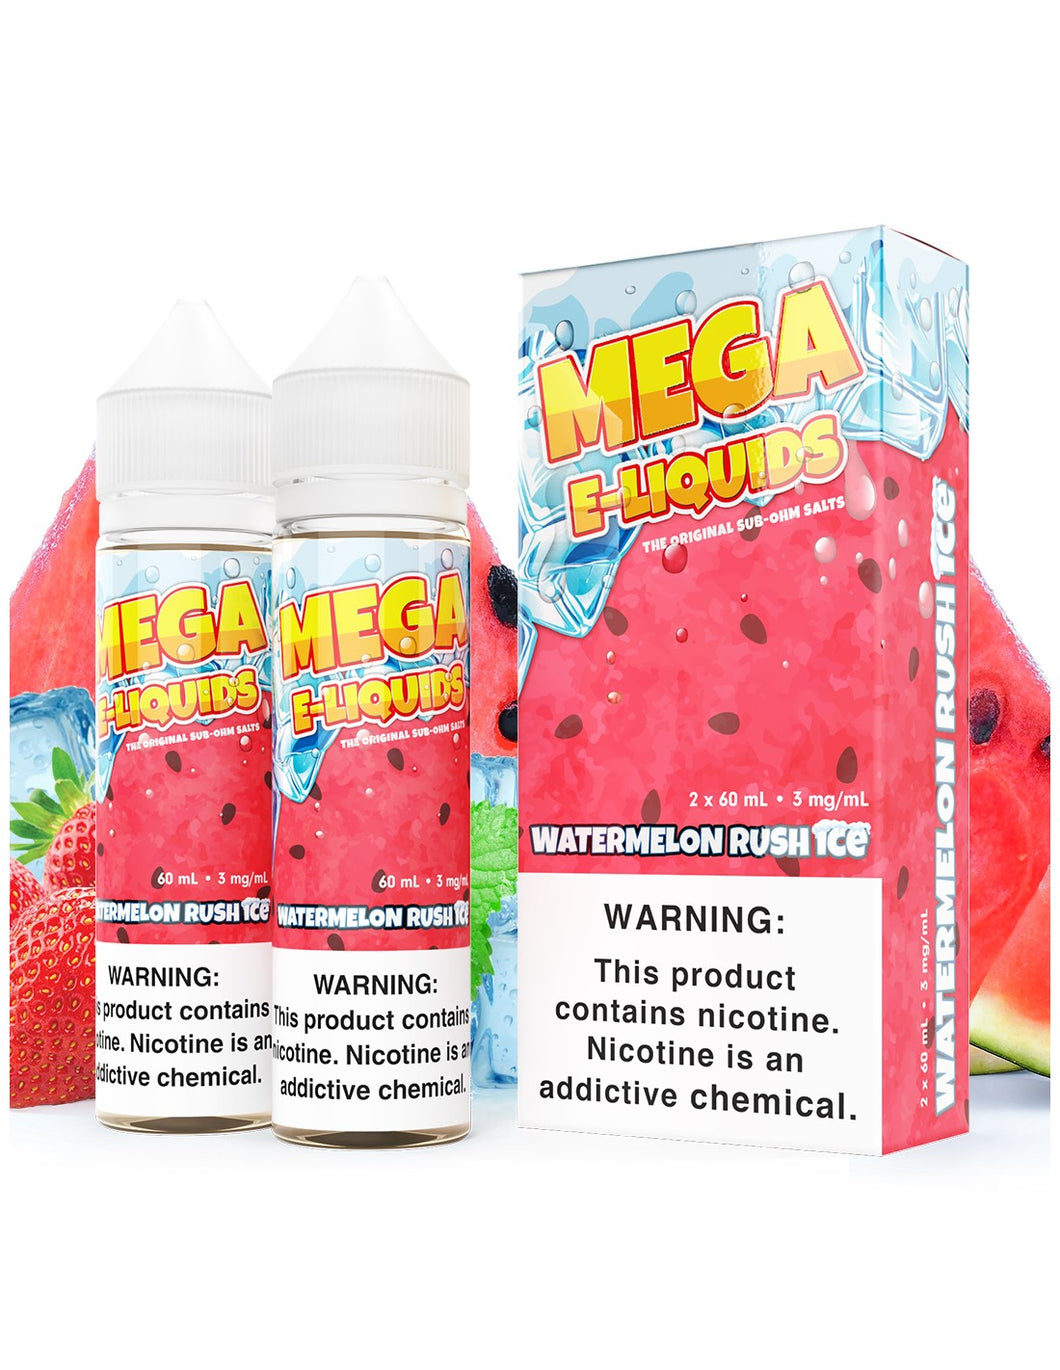 Watermelon Rush Ice is a fruity menthol e juice with flavors of strawberry & watermelon. This e liquid is made by MEGA E Liquids in quantities of 120ml or 240ml. Nicotine strength options are 0%, 3% or 6%.